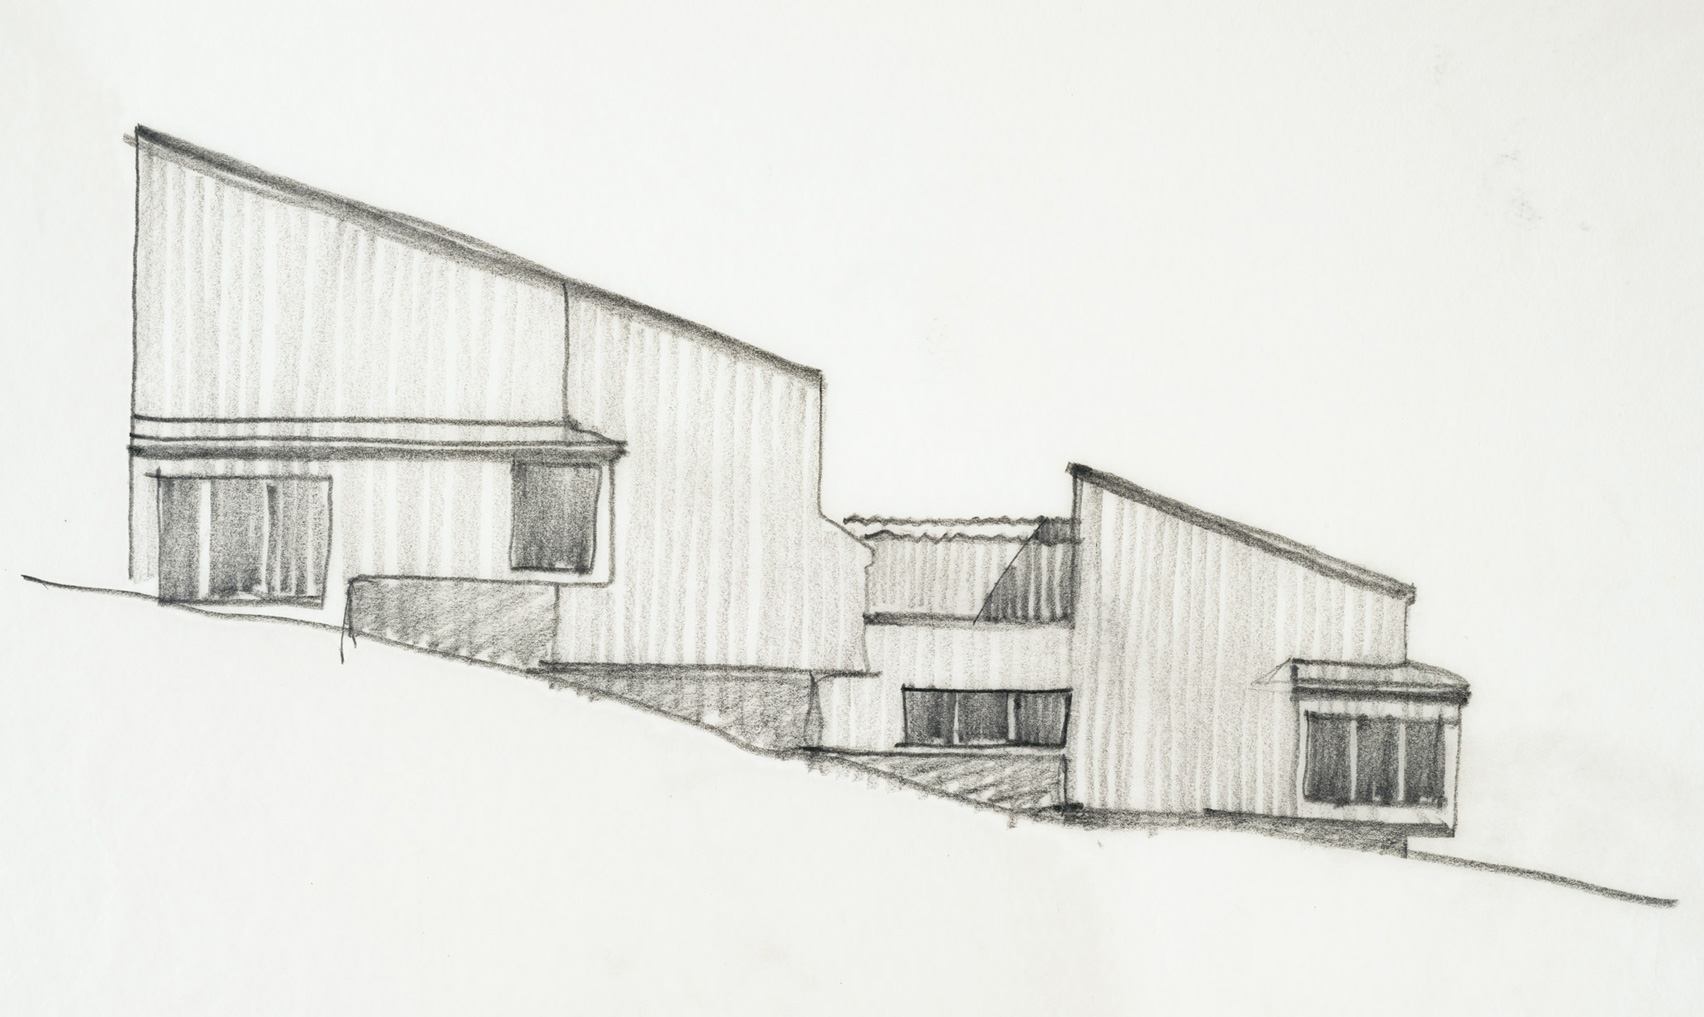 mltw-condo-one-the-sea-ranch-architecture-environment-and-idealism-sfmoma_dezeen_1.jpg